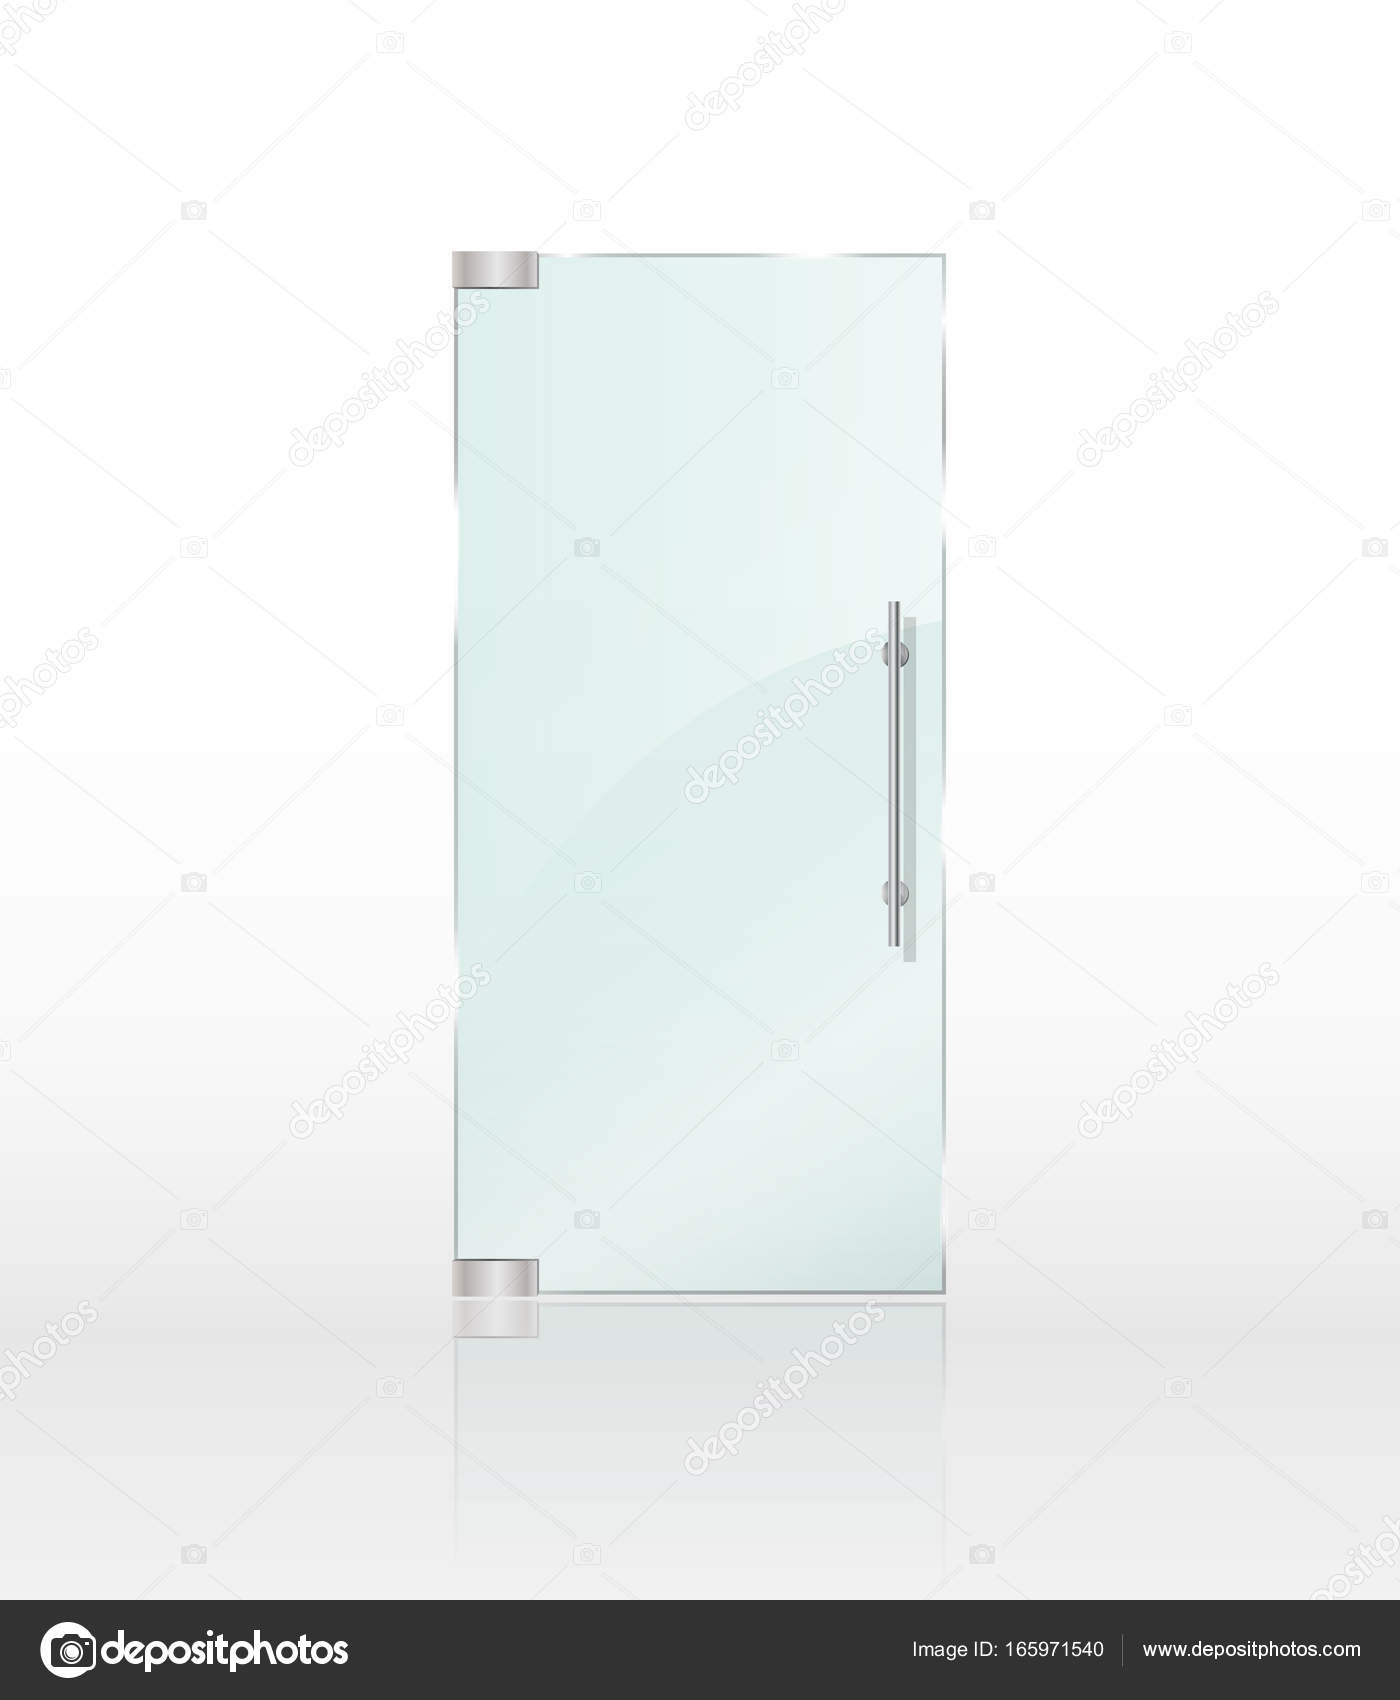 Transparent clear glass door isolated on white background. Entrance ...